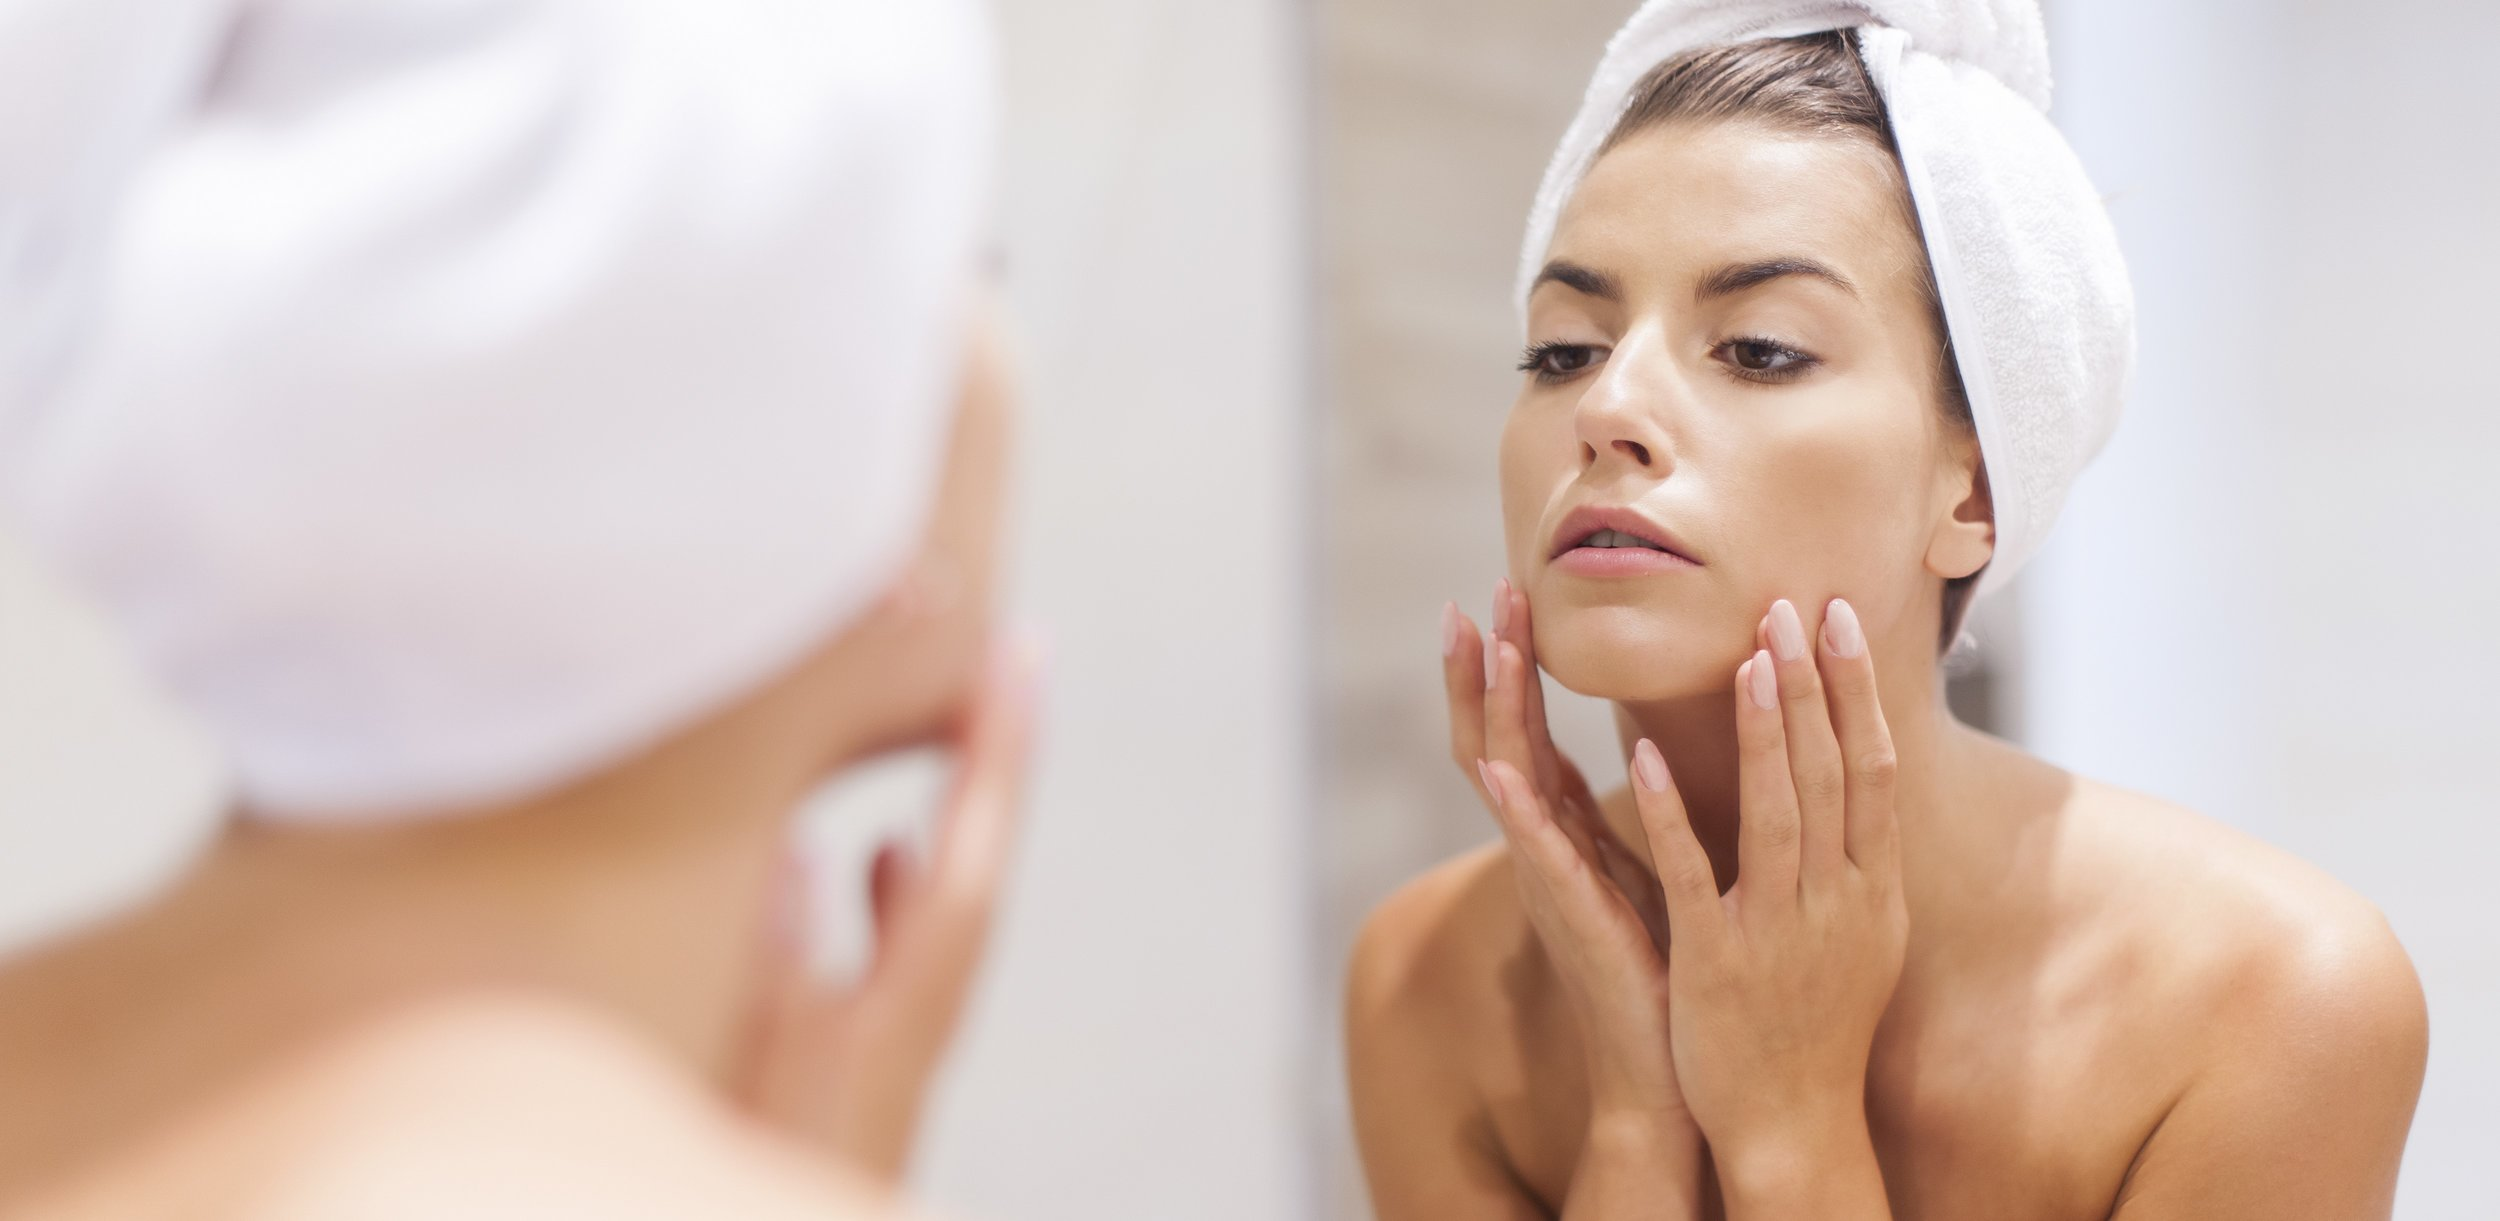 Discover the best night-time beauty tips, backed up by scientific research.